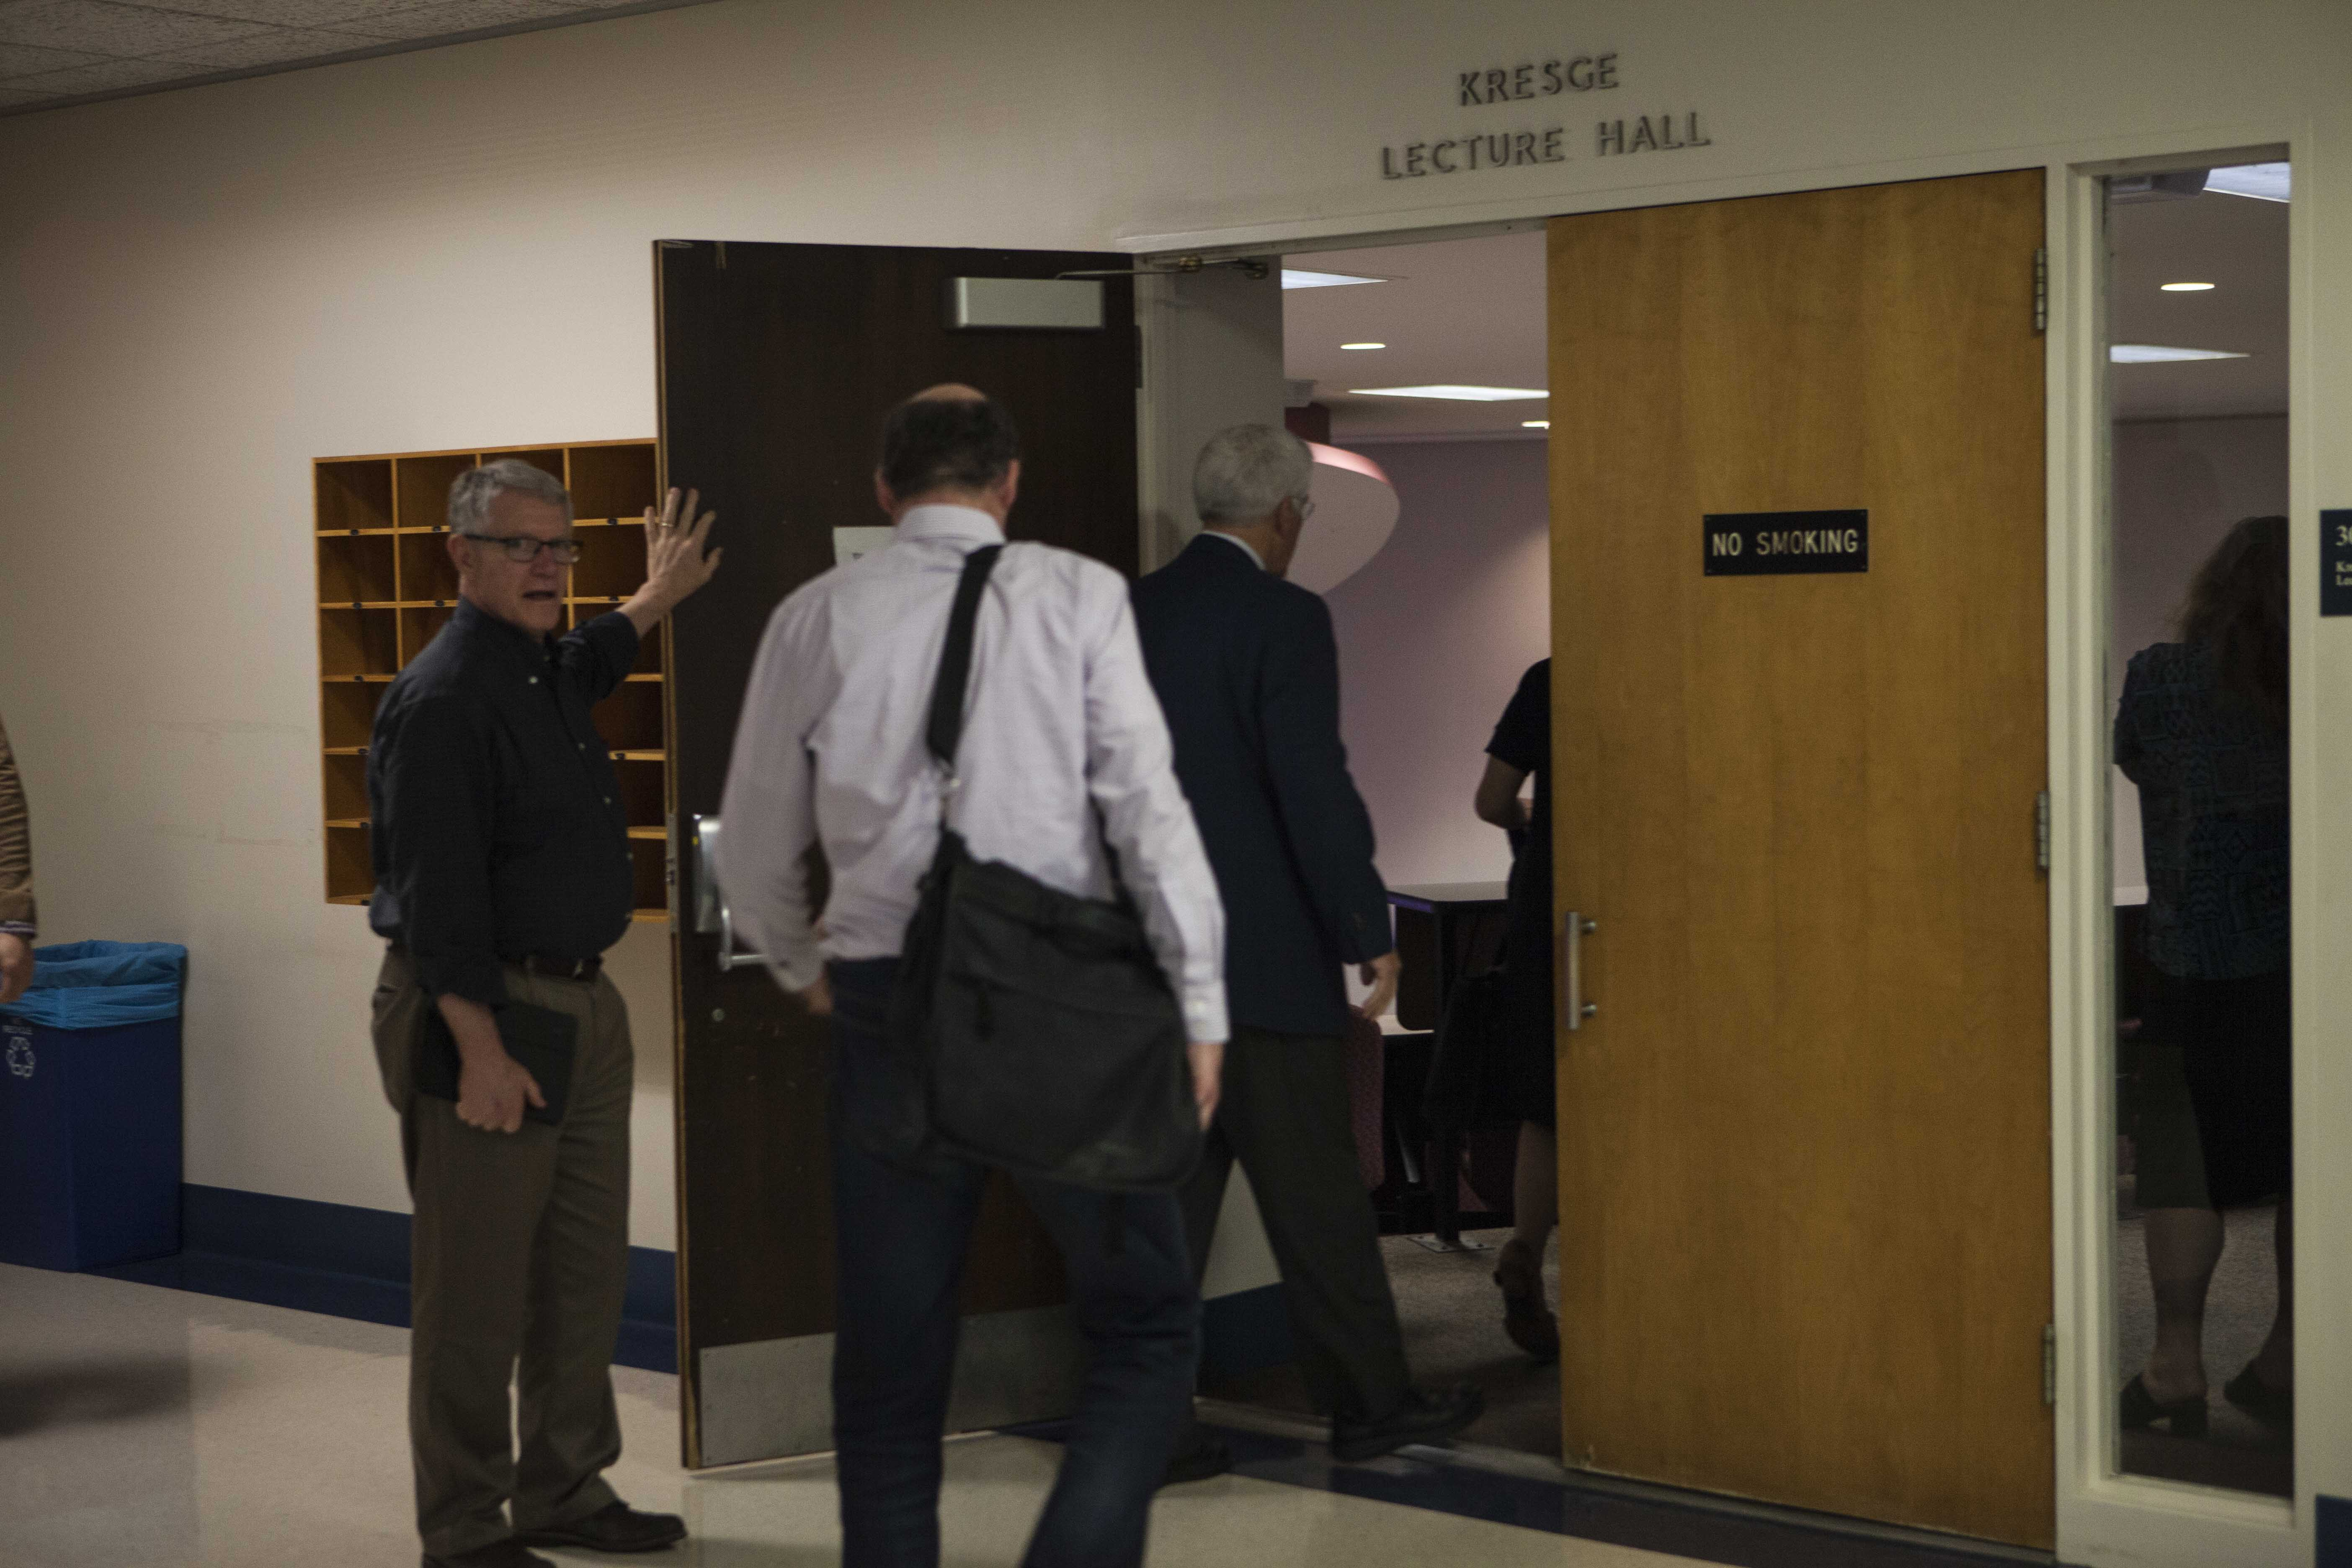 Faculty and administrators enter King Building Room 306 for Wednesday's General Faculty meeting. With impending administrative turnover, faculty is reckoning with the viability of the Strategic Plan.